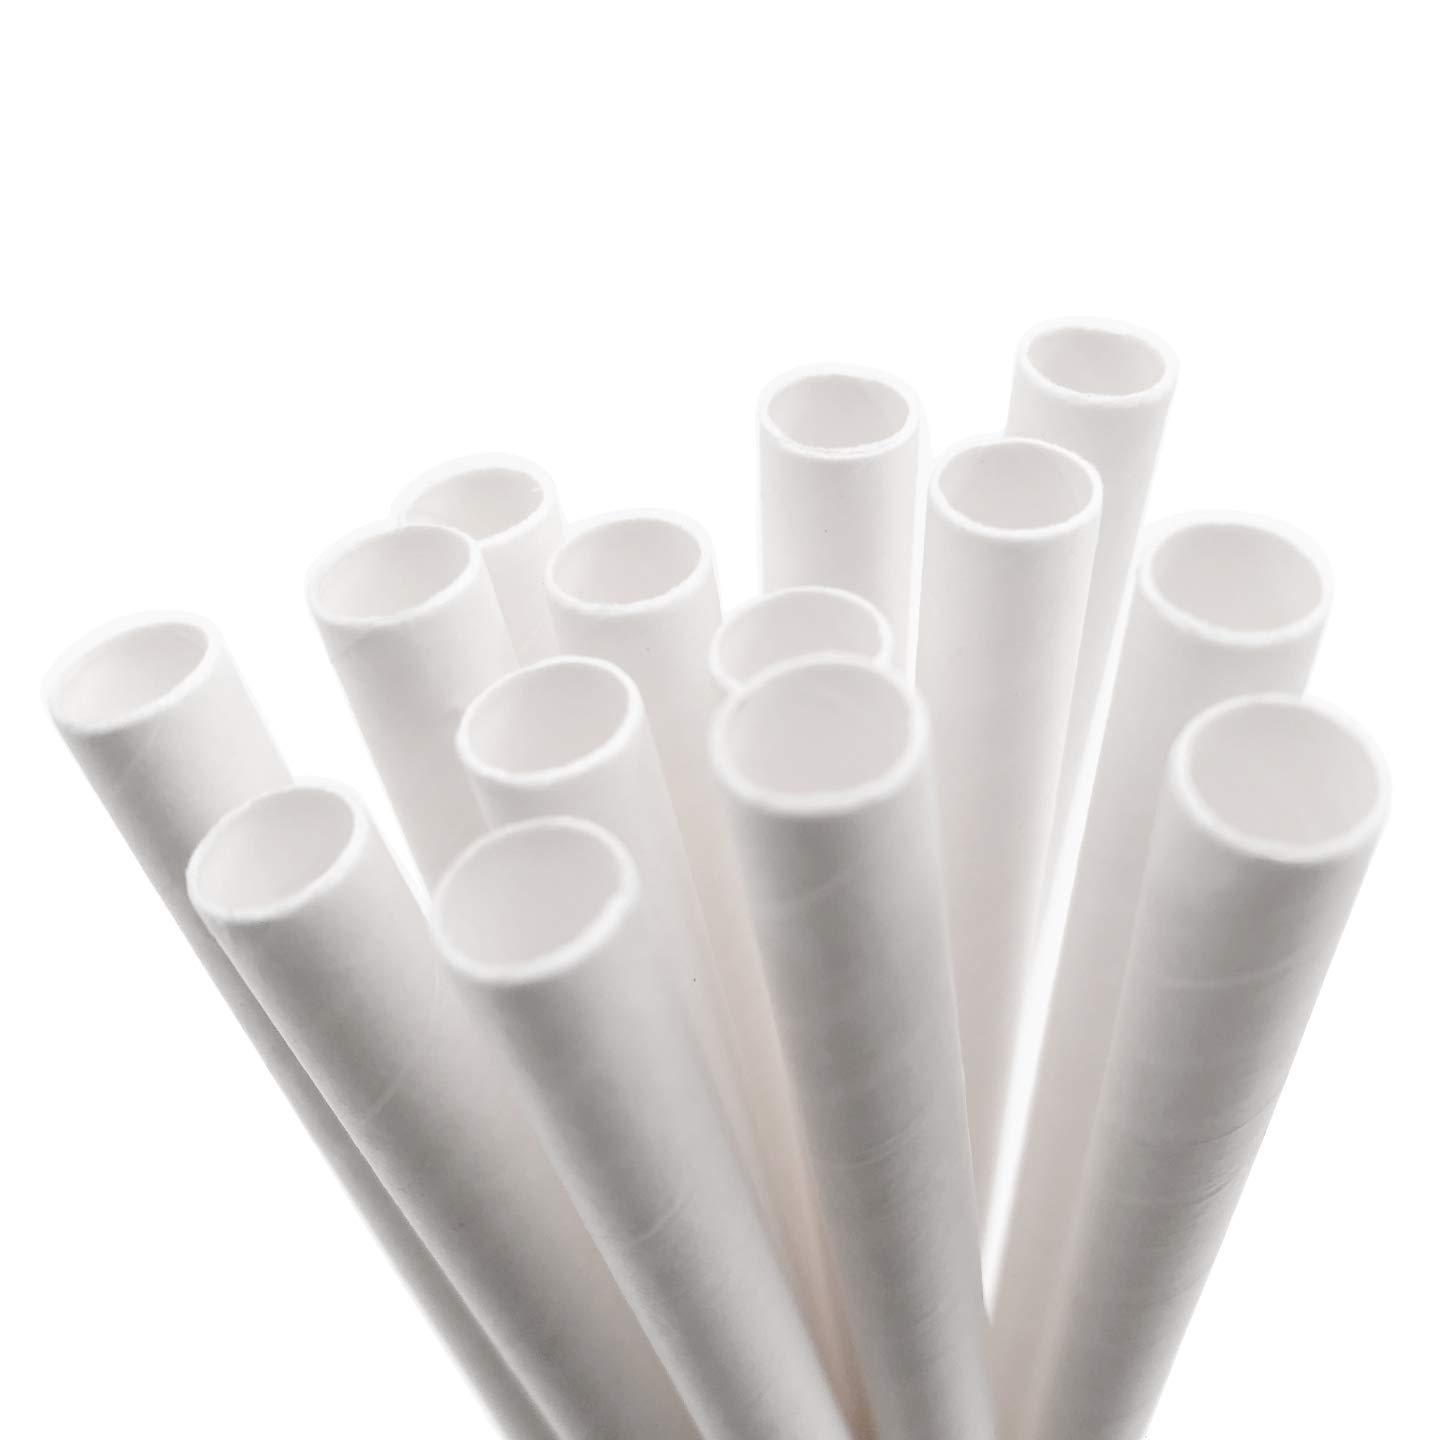 6'' Short Cocktail Paper Straw 1,400/pack by PodPaks by PodPaks